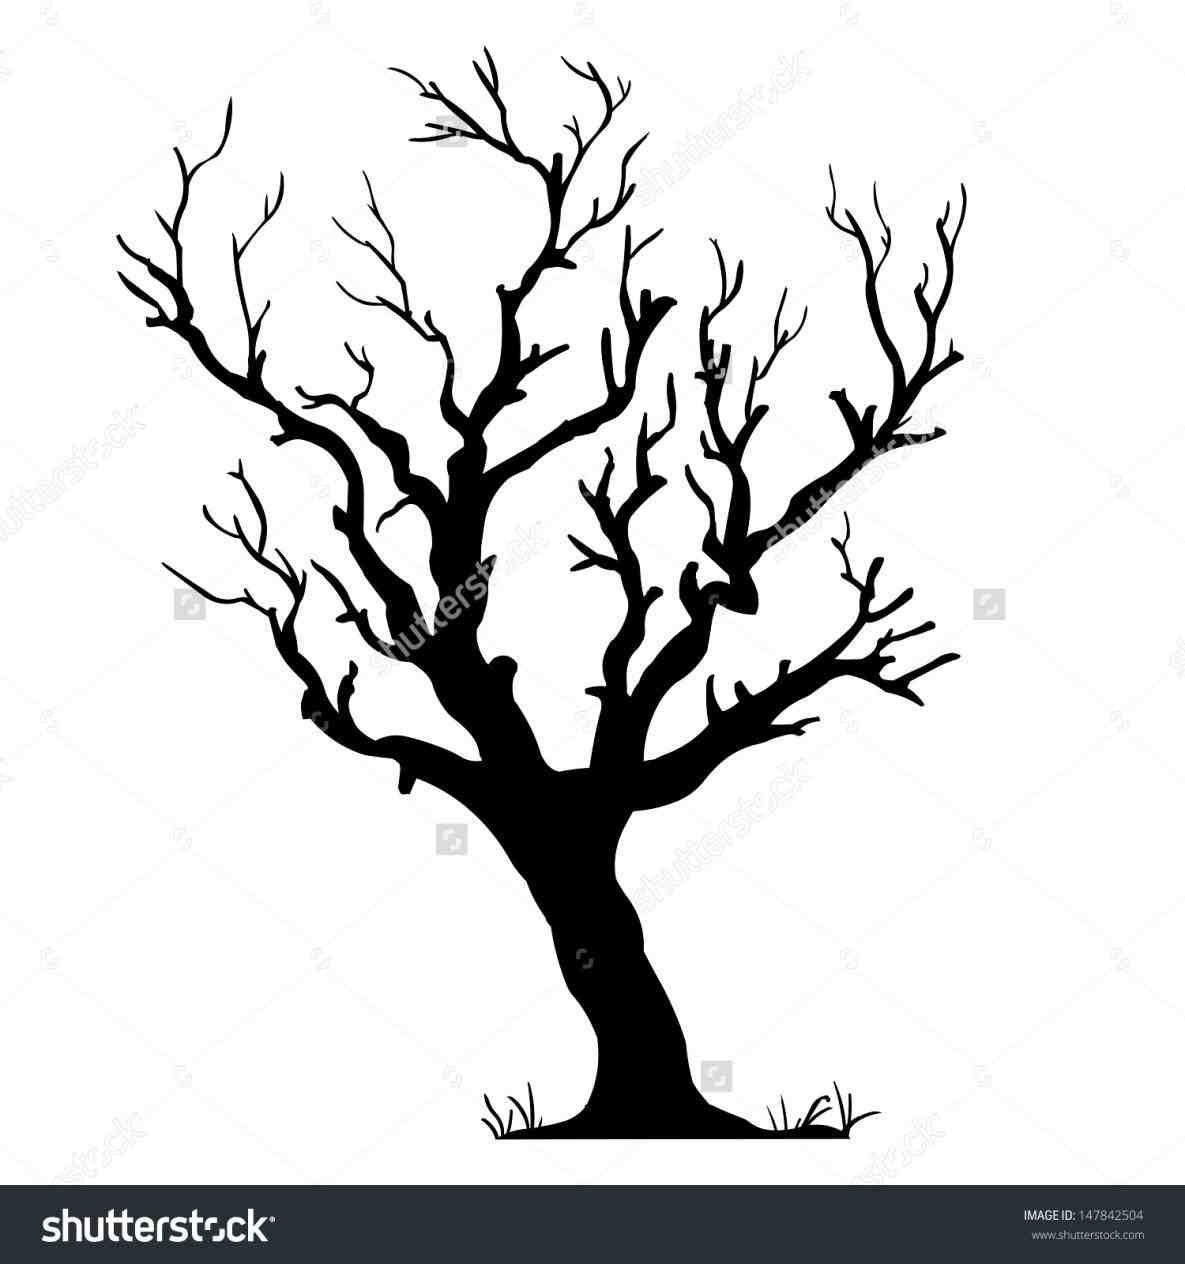 The Best Free Wood Silhouette Images Download From 398 Free Silhouettes Of Wood At Getdrawings